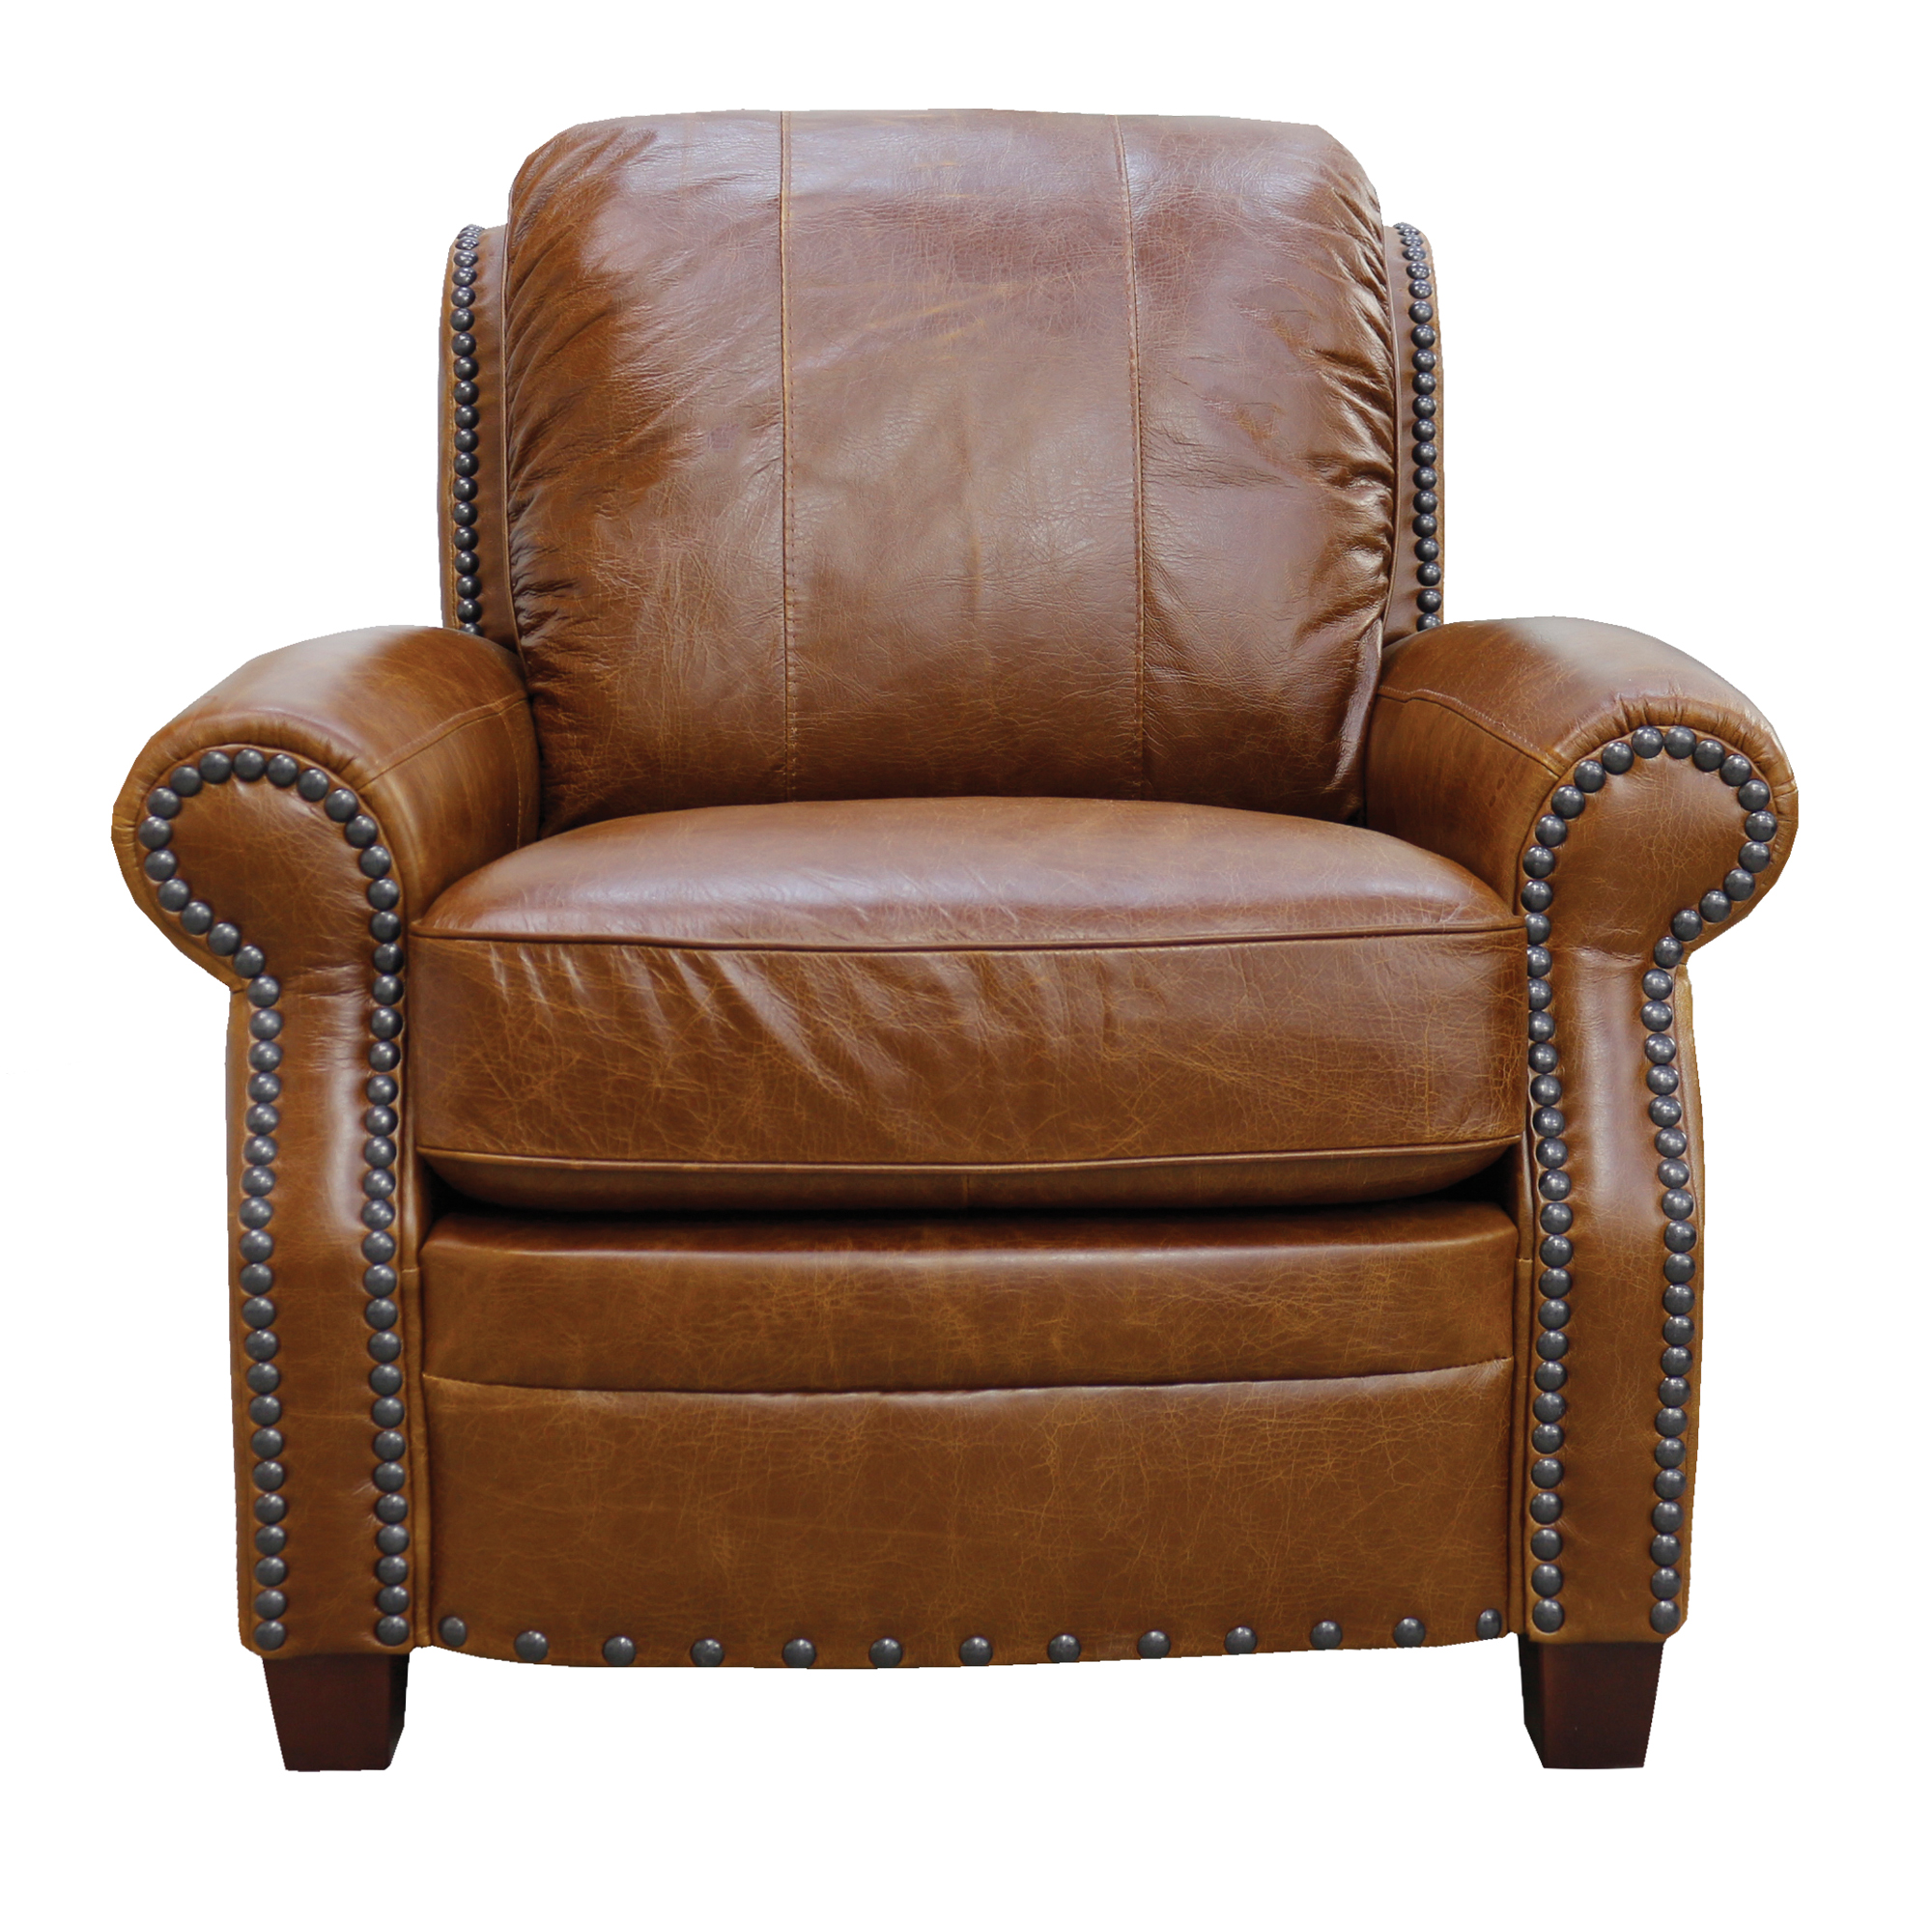 Luke Leather Furniture - Chairs - ASHTON in Color 156 Safari Tan